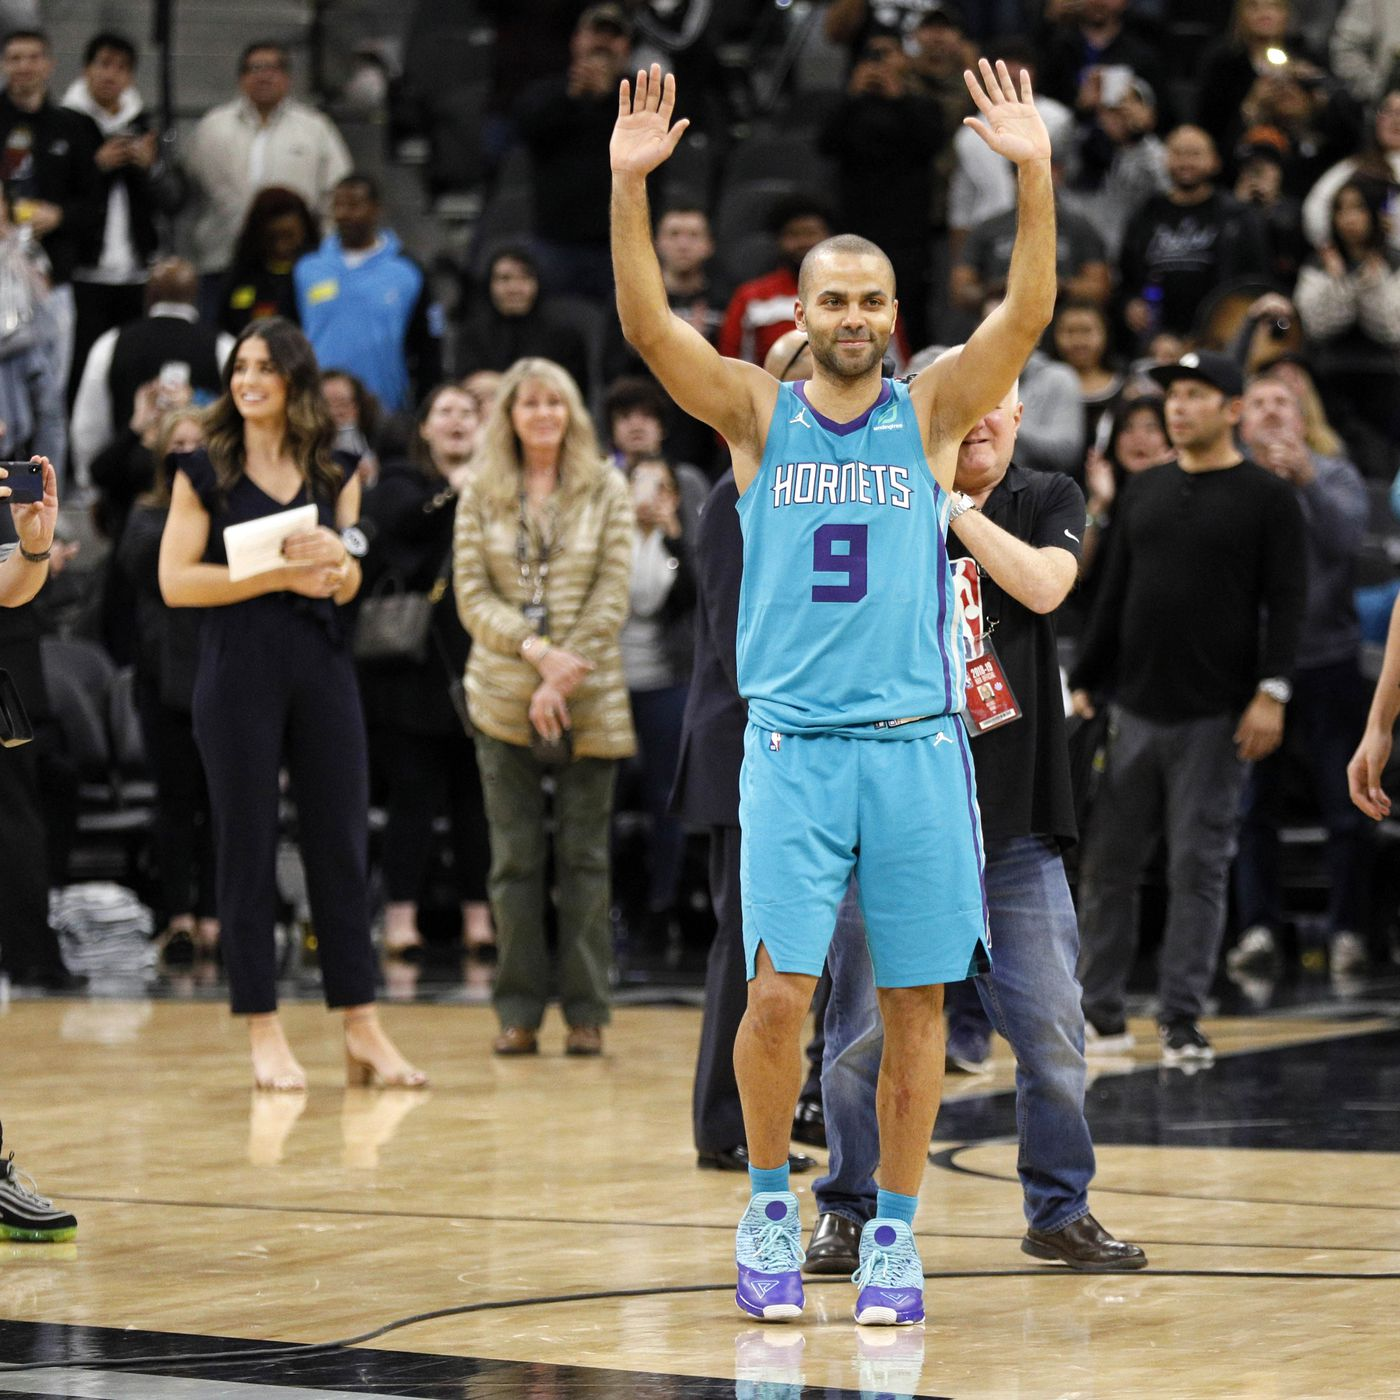 20a1128f954 Don't count on Tony Parker retiring as a Spur - Pounding The Rock